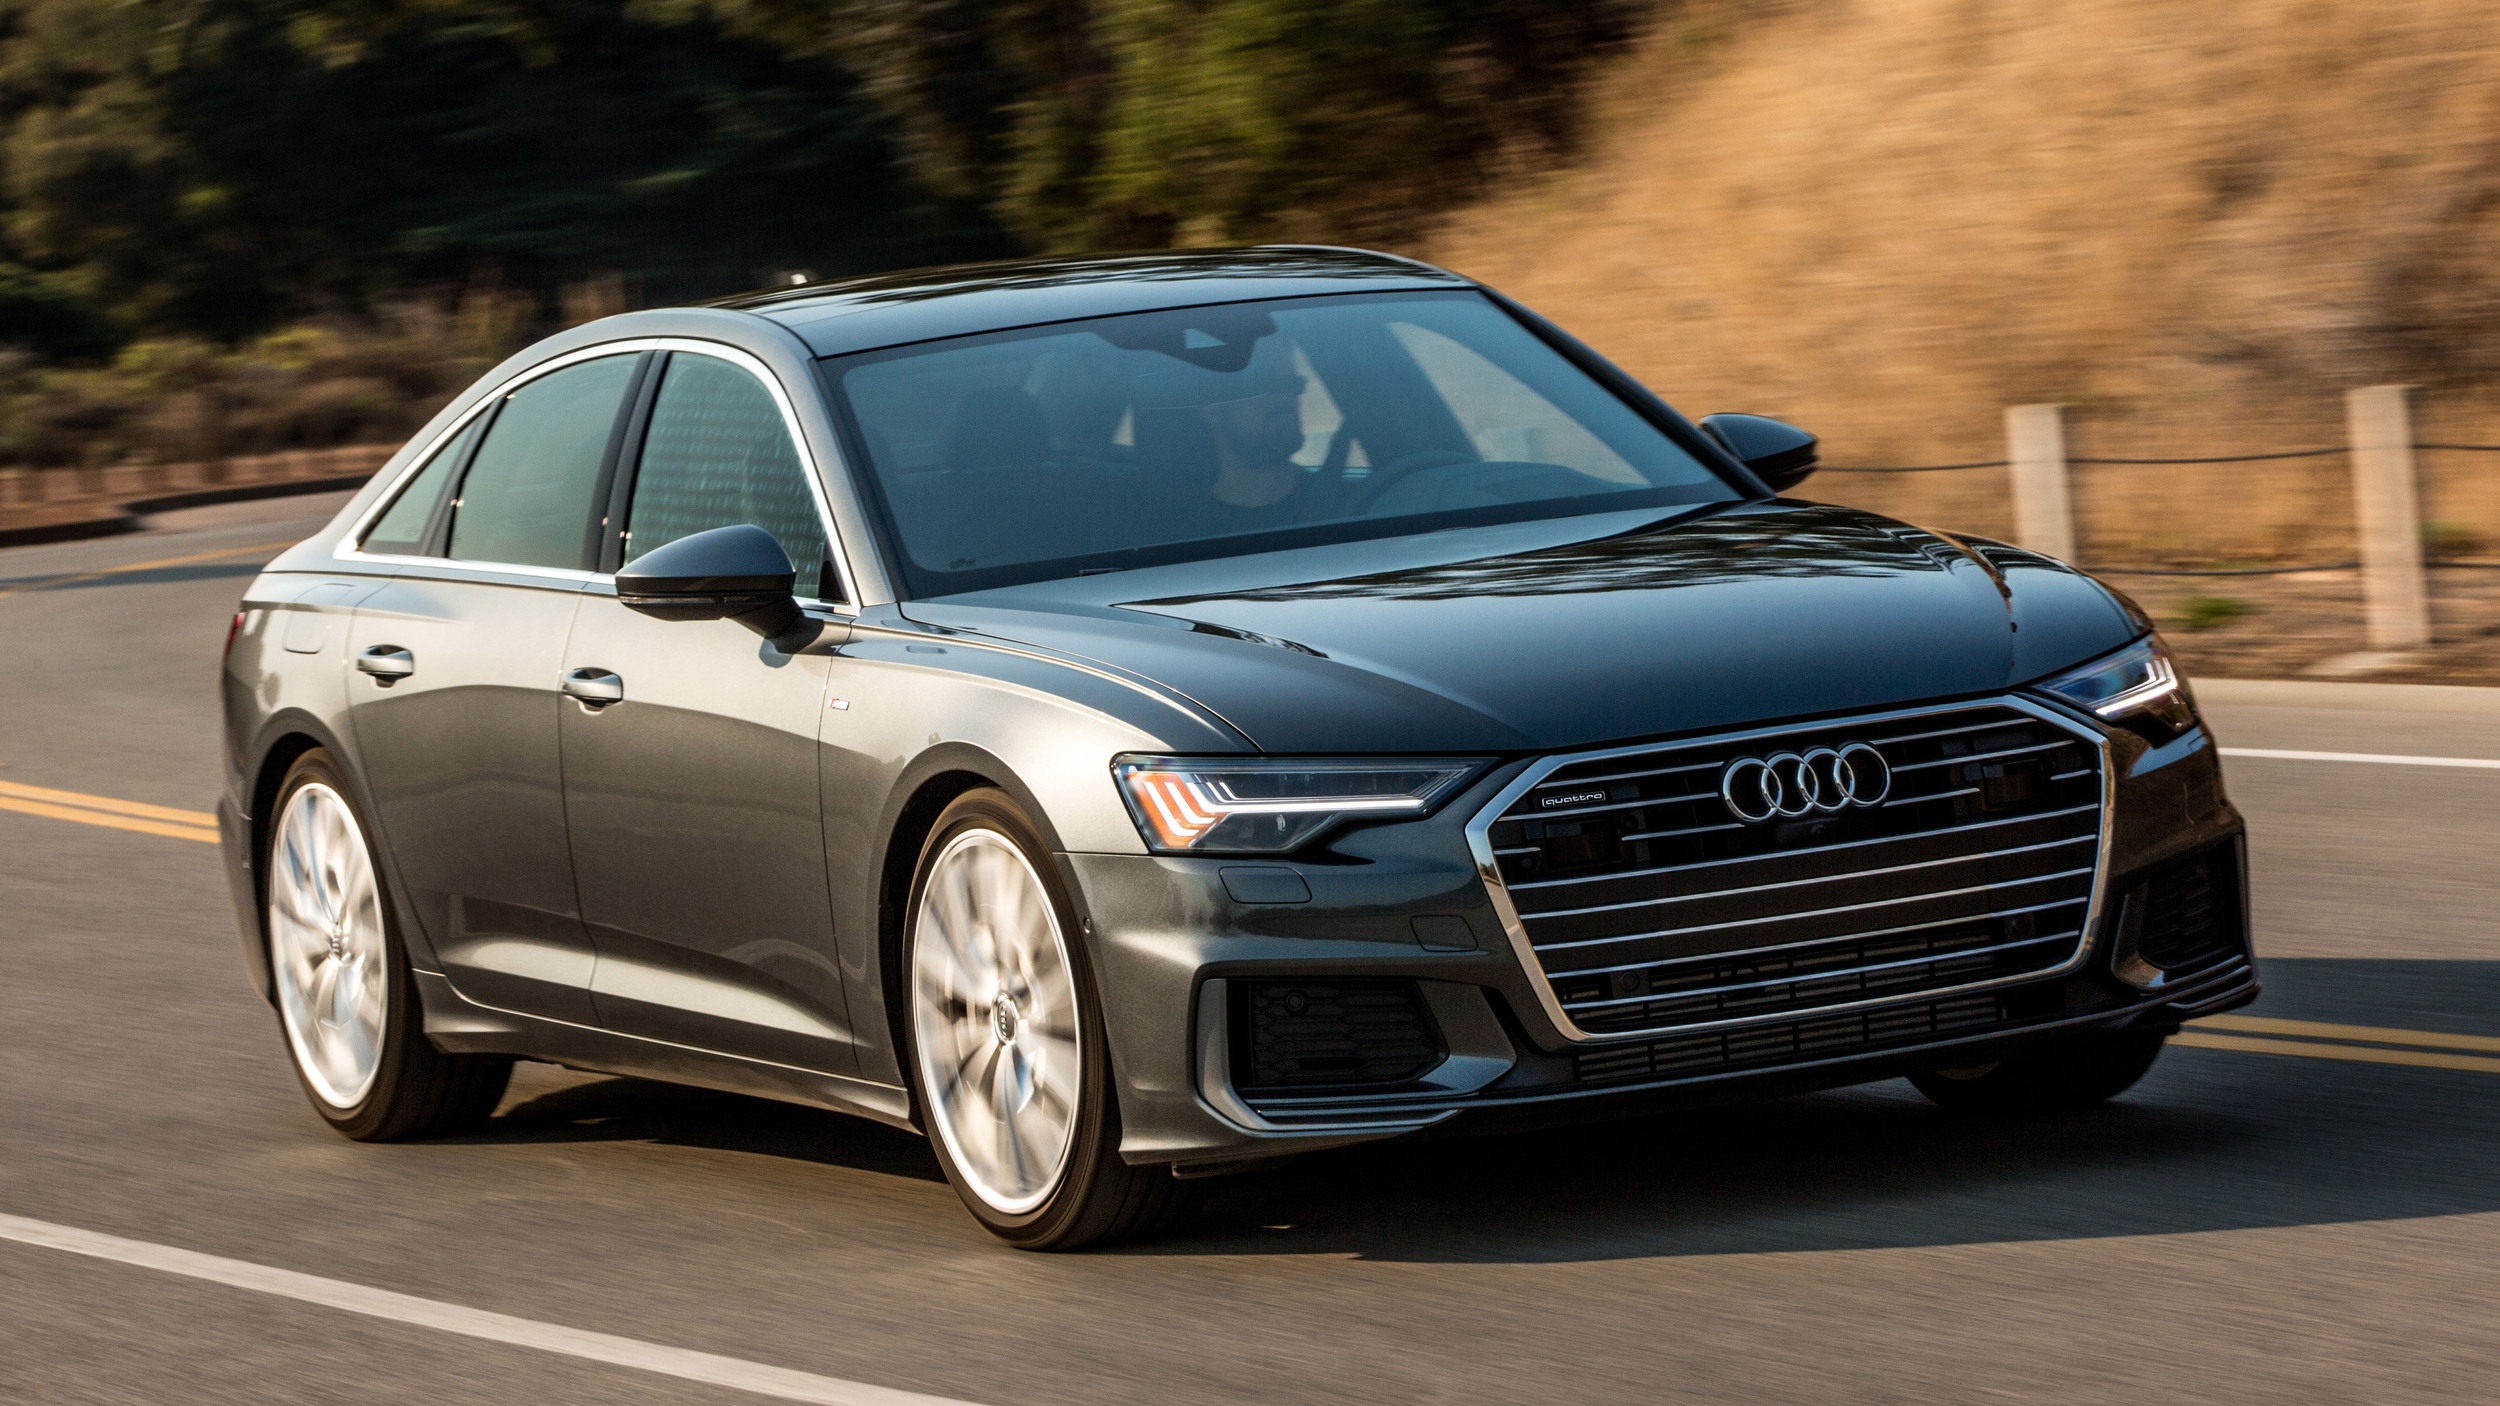 2019 Audi A6 luxury sports sedan driving review | Autoblog